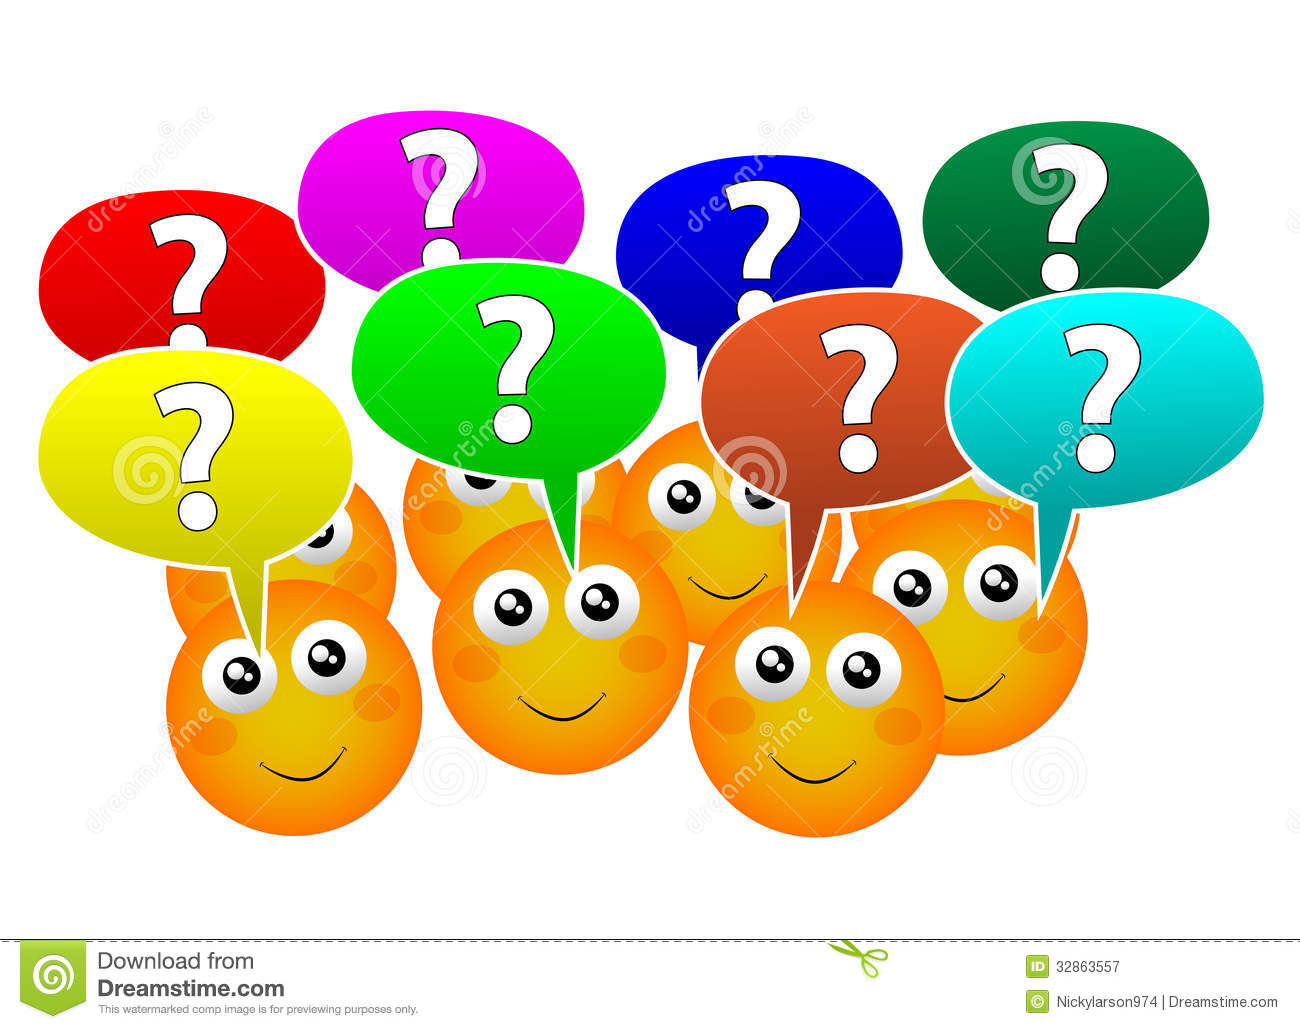 Ask Question Clipart People Asking Quest-Ask Question Clipart People Asking Questions-2